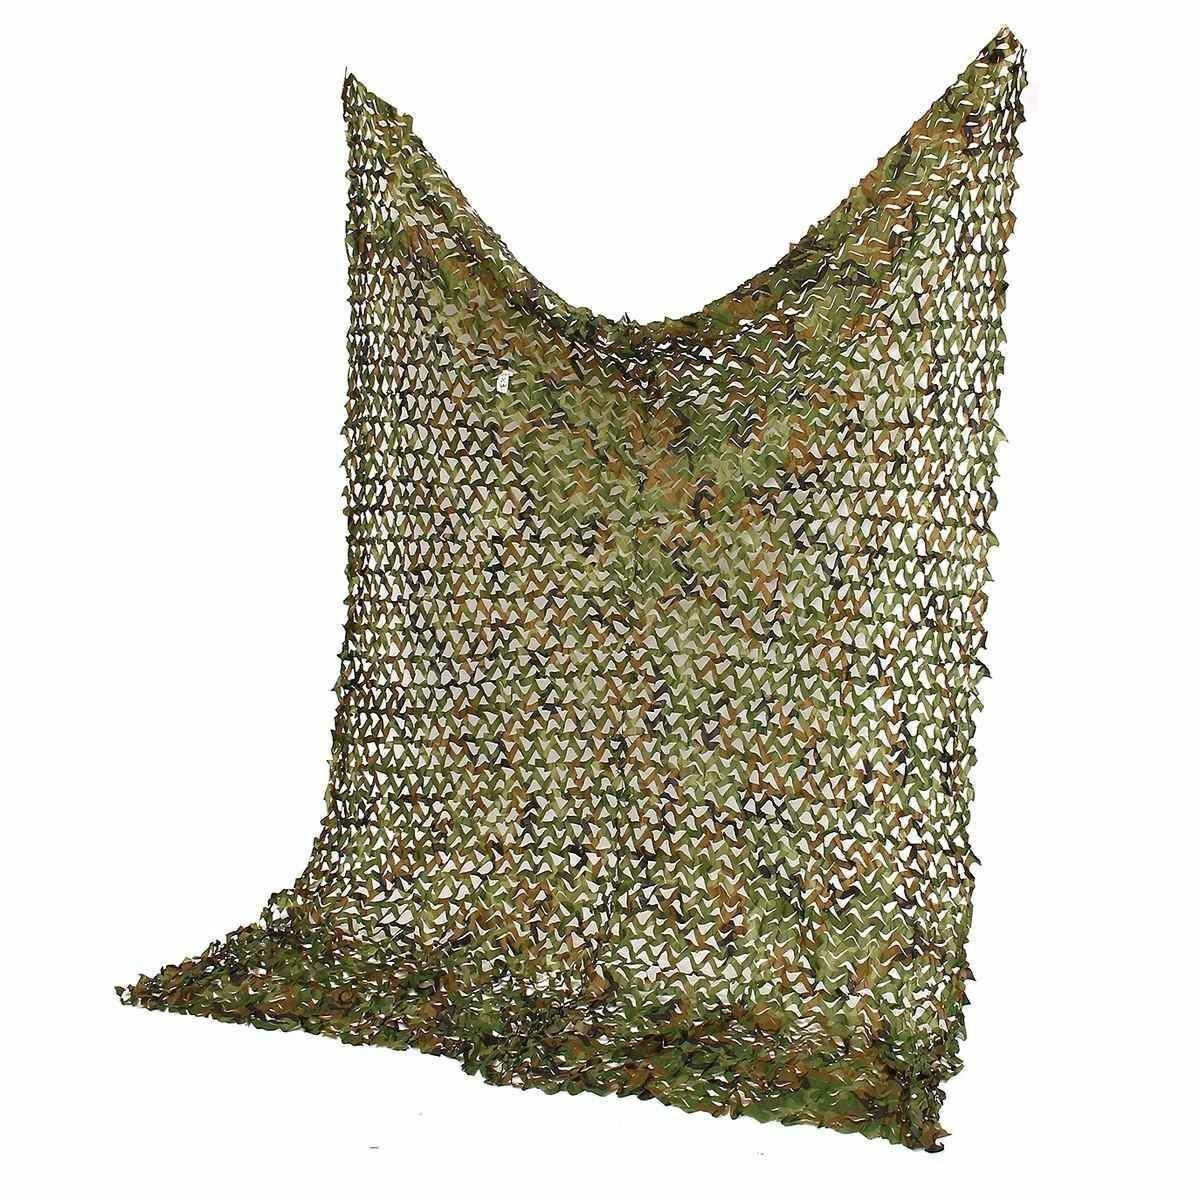 2mX5m Hunting Camping Oxford Camouflage Camo Net Hide Army Netting car cover Mil